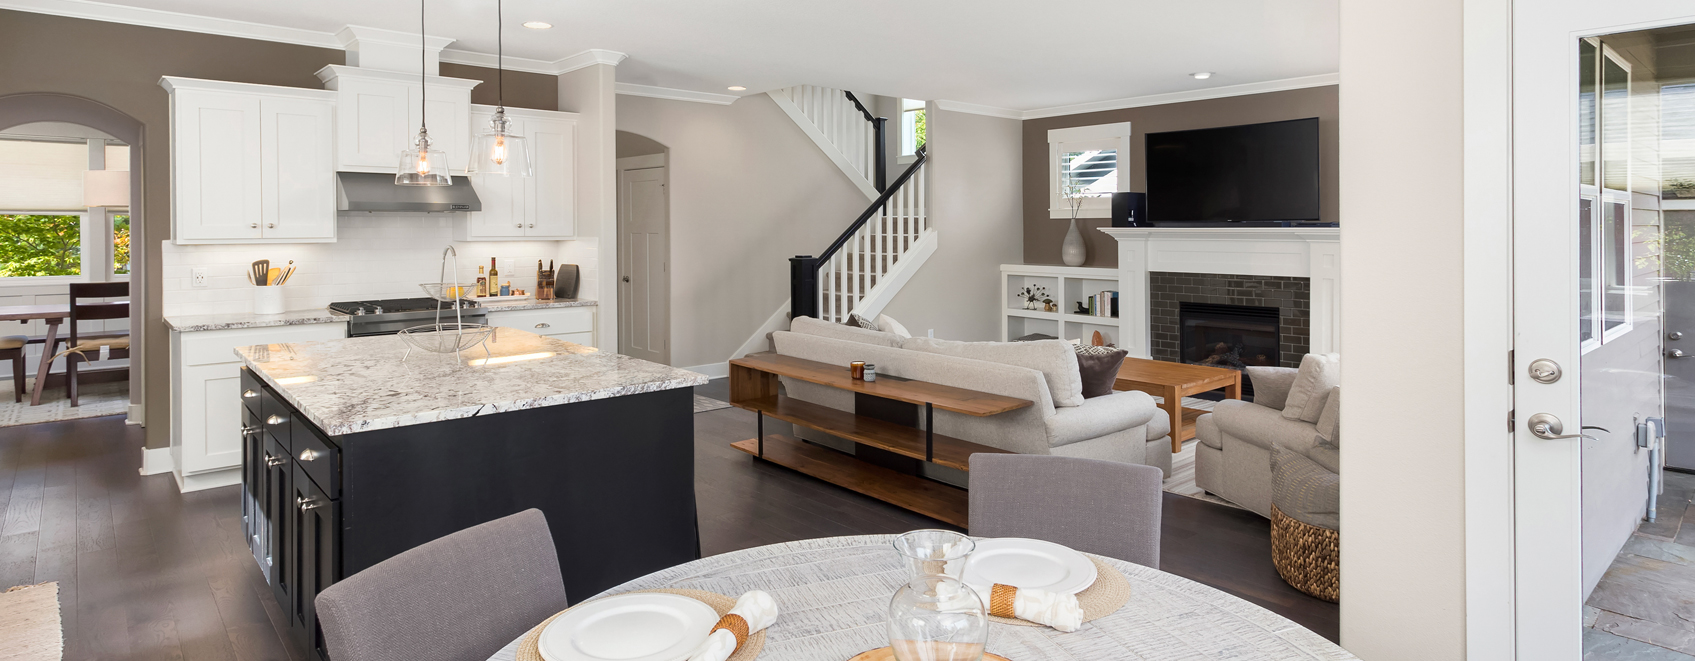 Bright, open kitchen and living room.